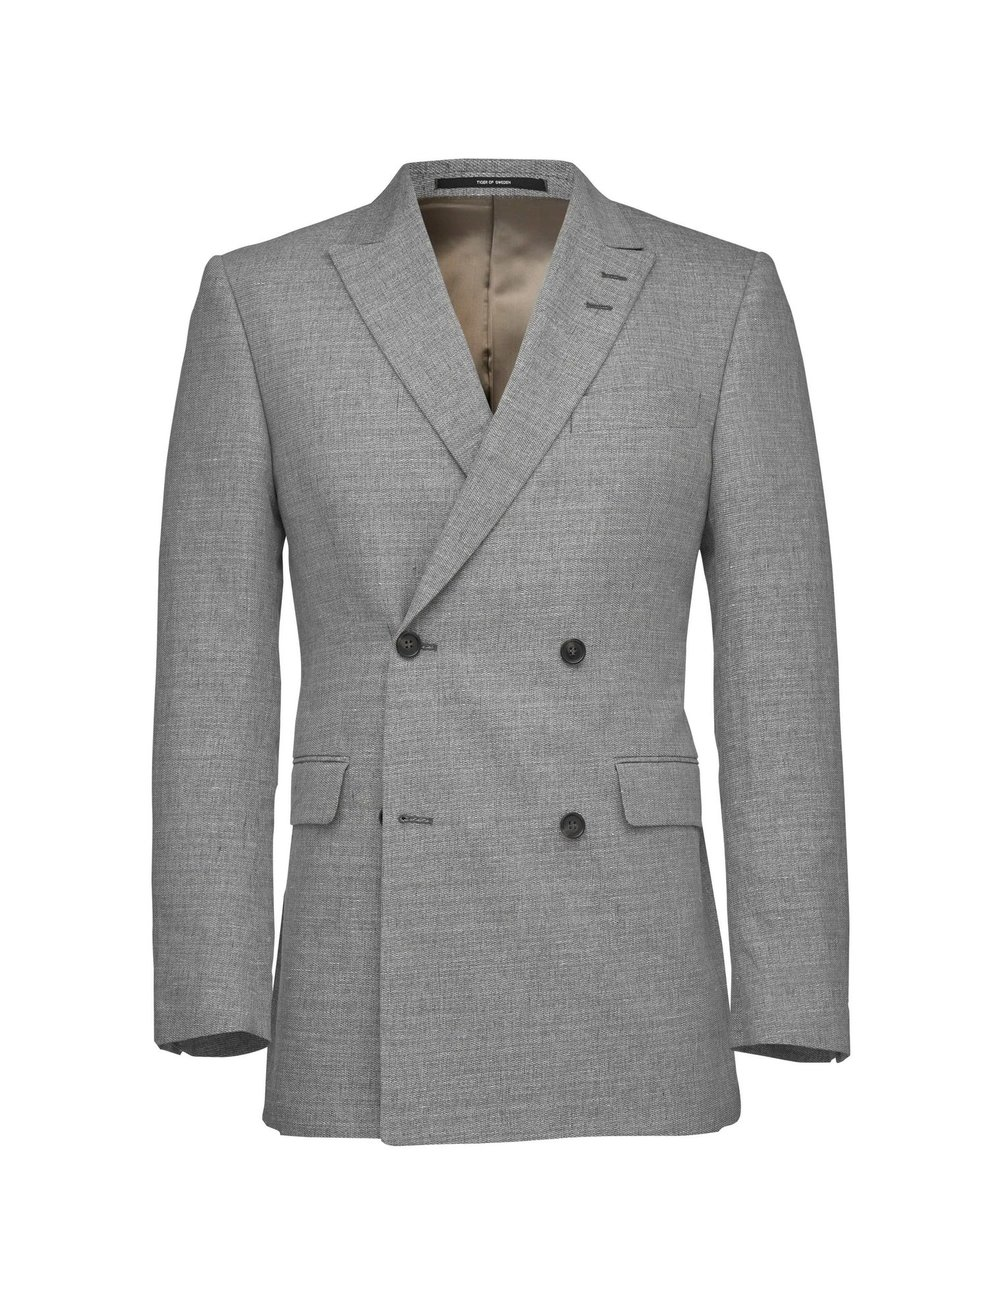 Tiger of Sweden blazer - Superbly cut and supremely stylish - £449